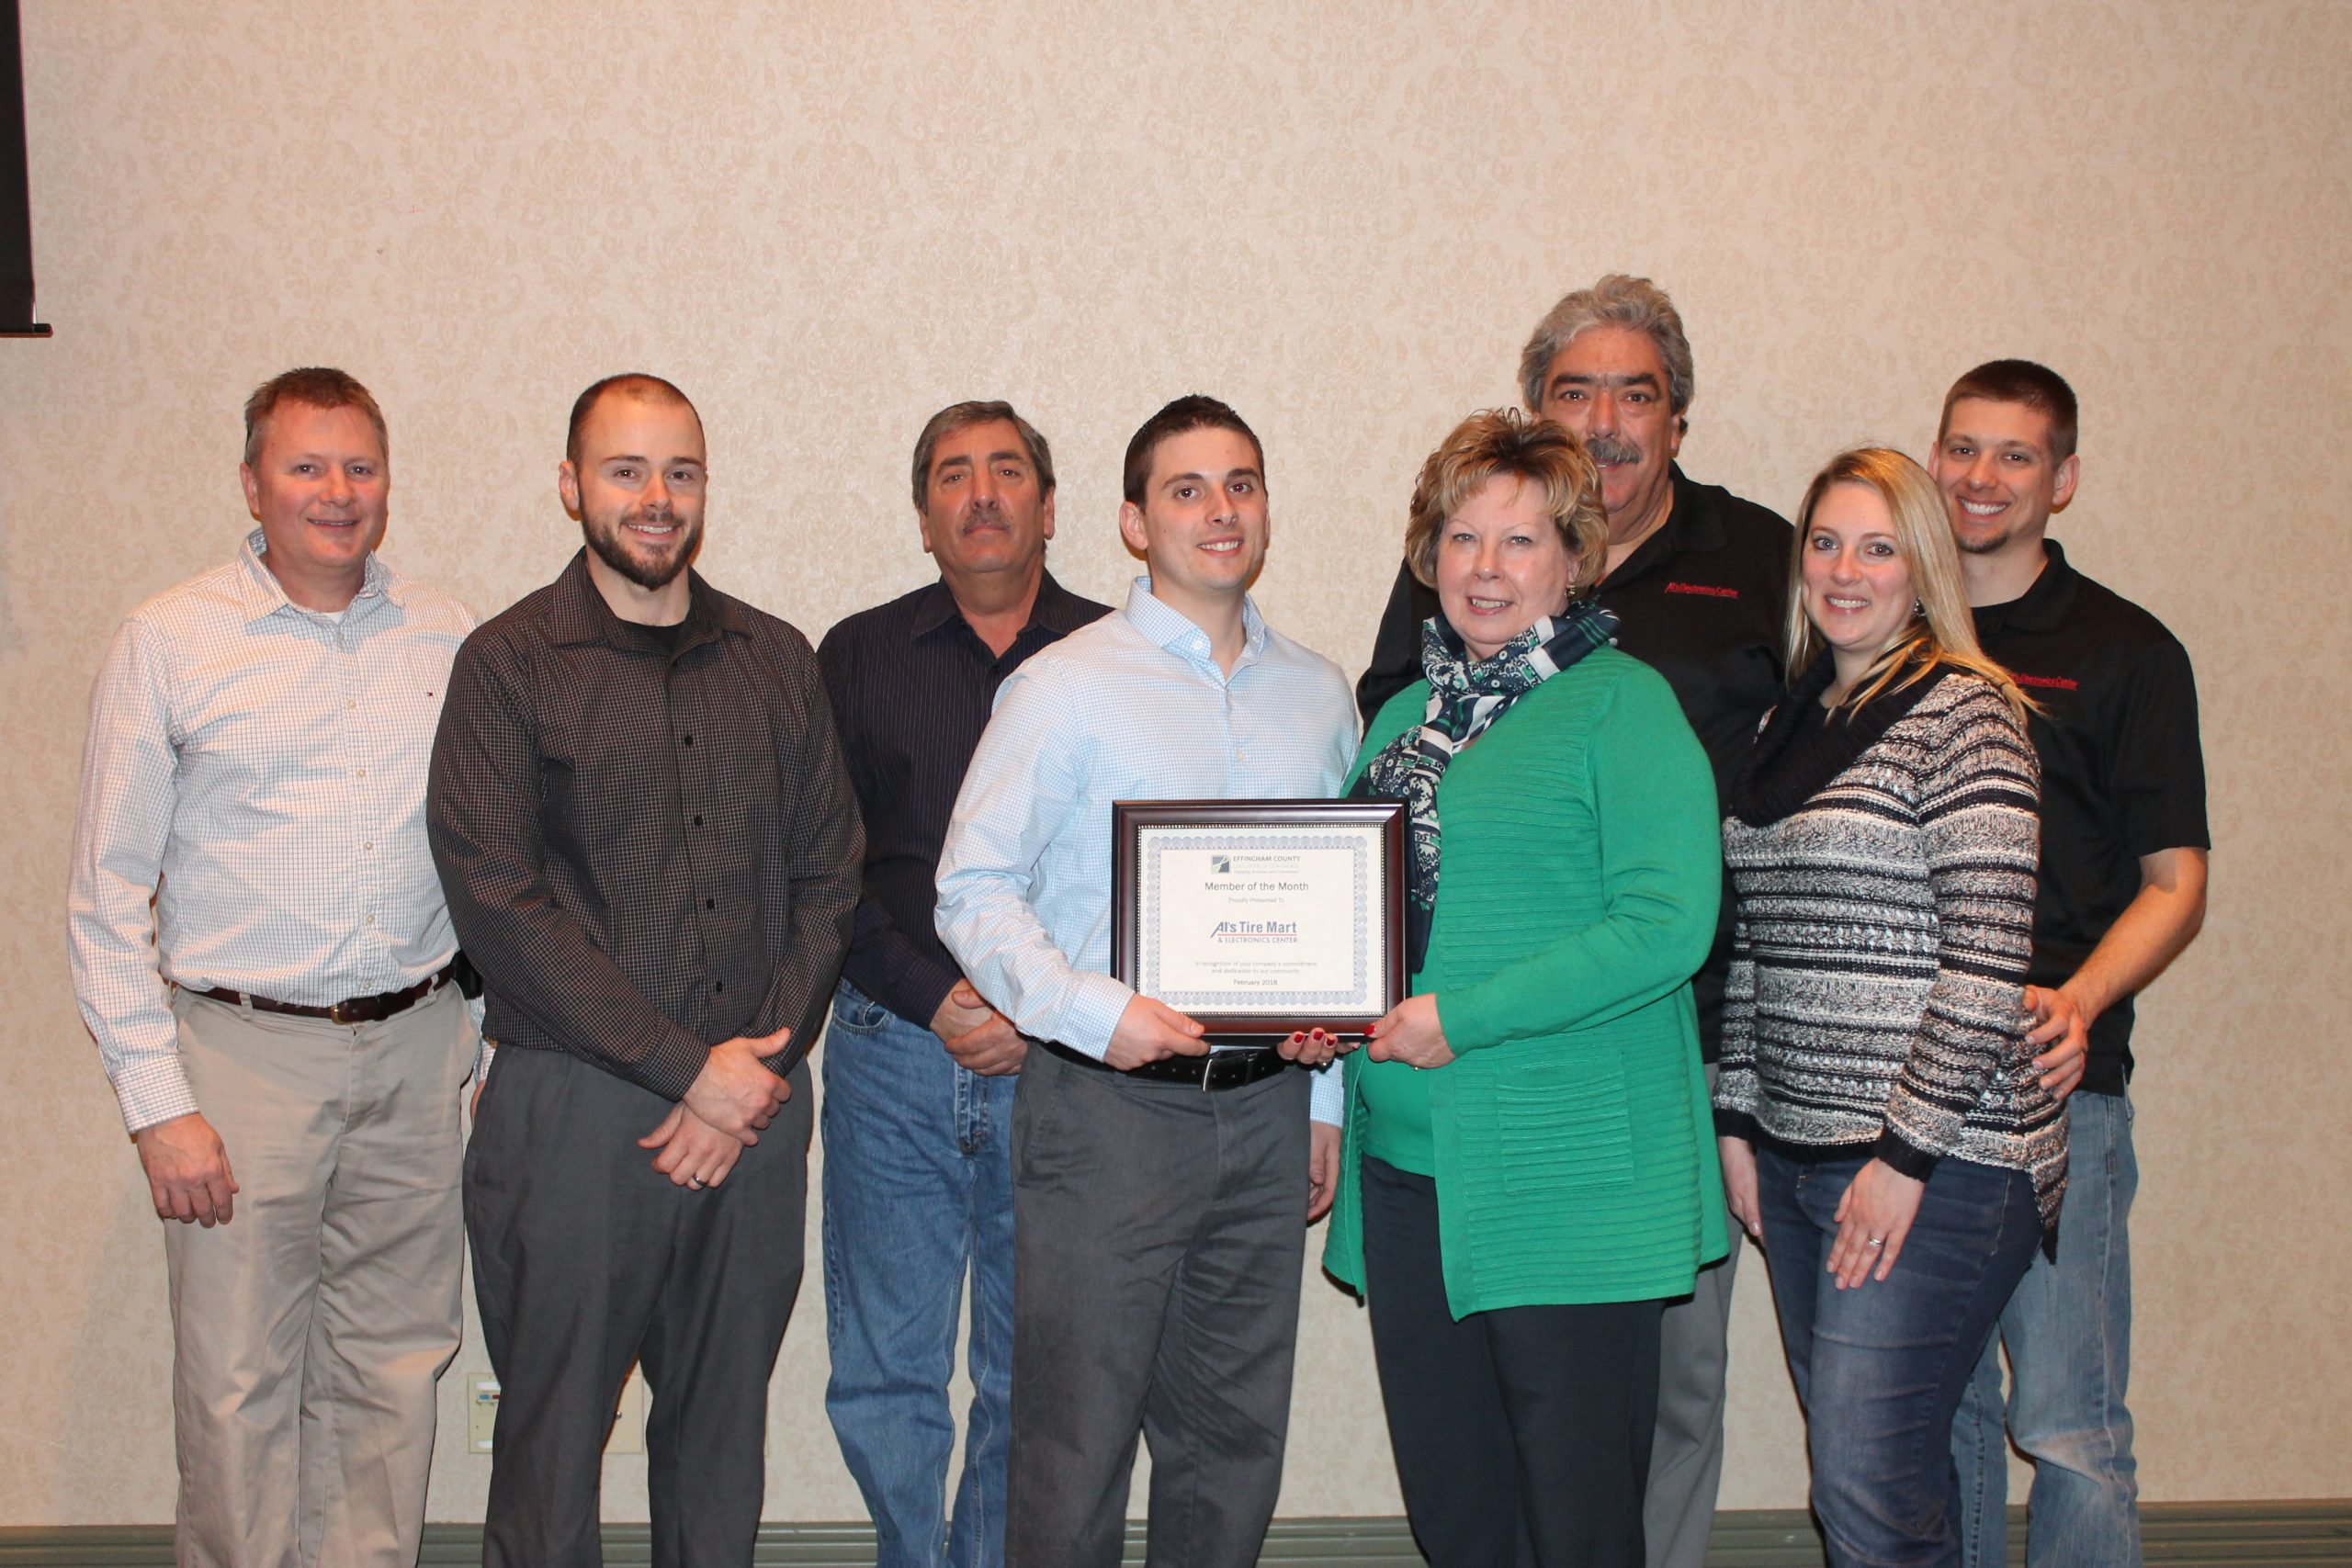 February Member of the Month Recipient Recognized